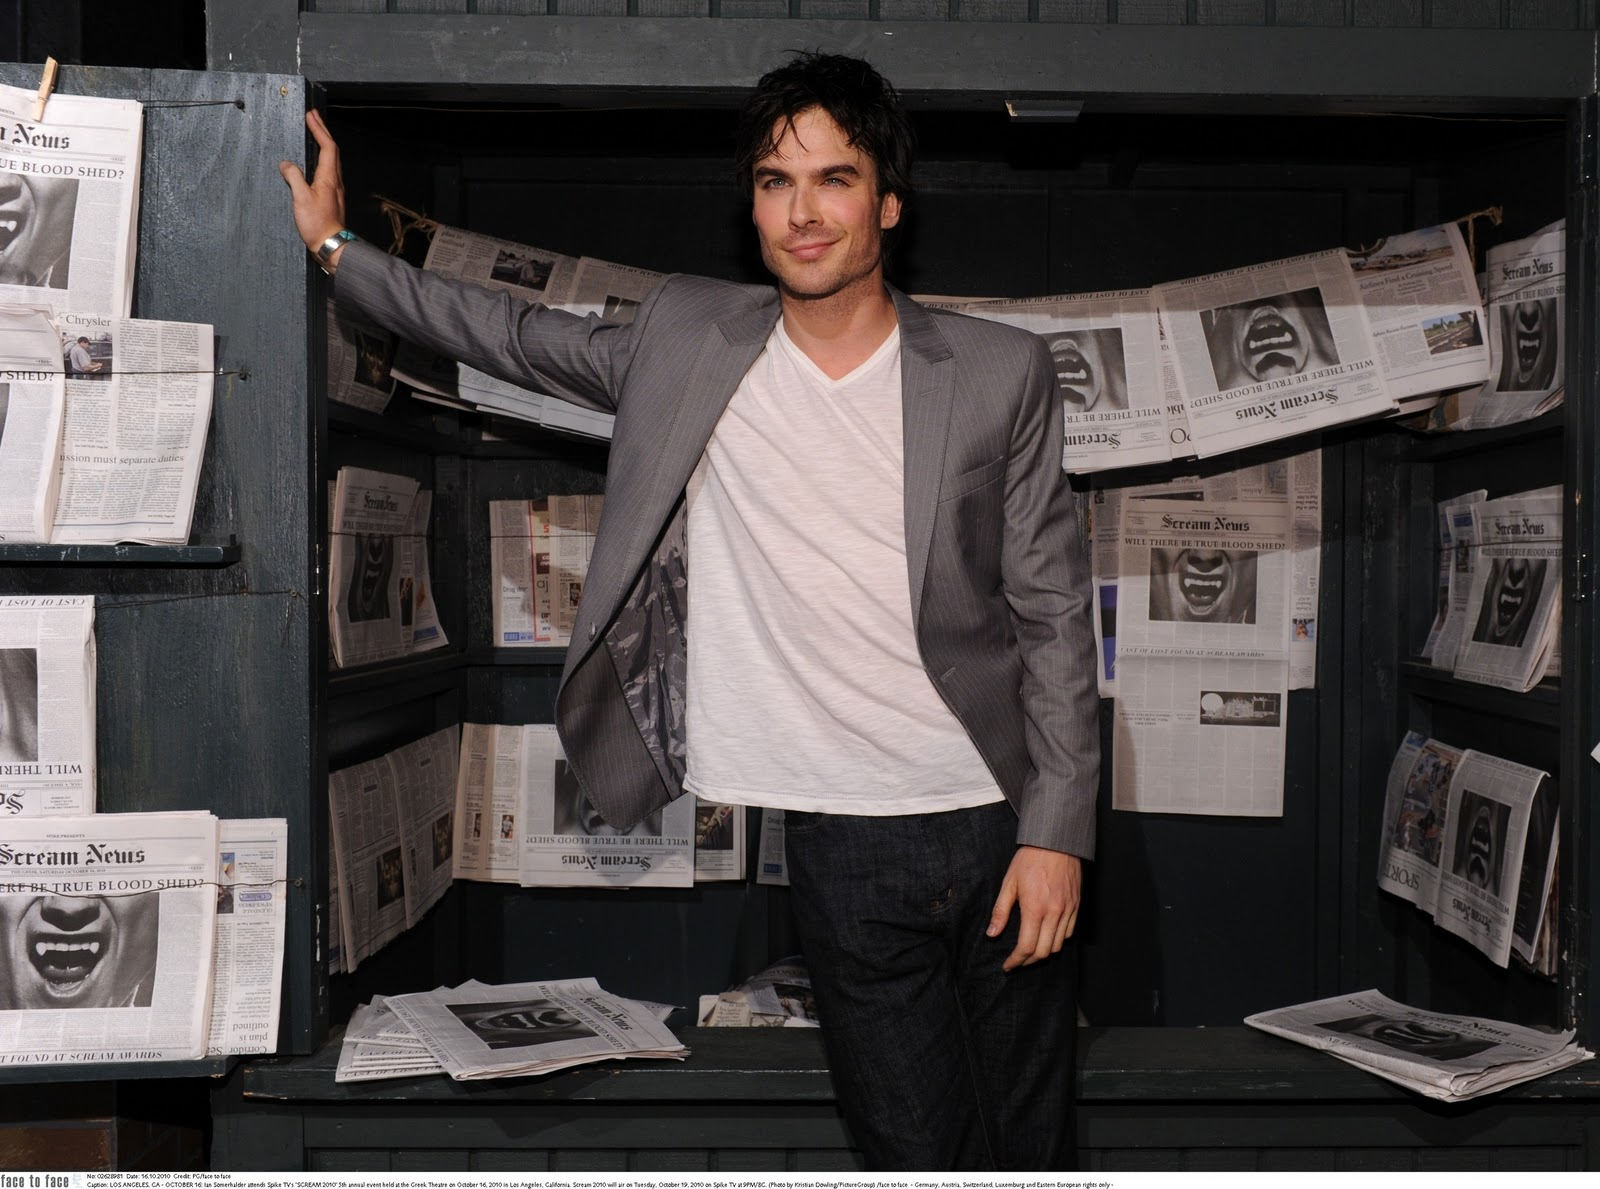 Ian somerhalder at the scream awards